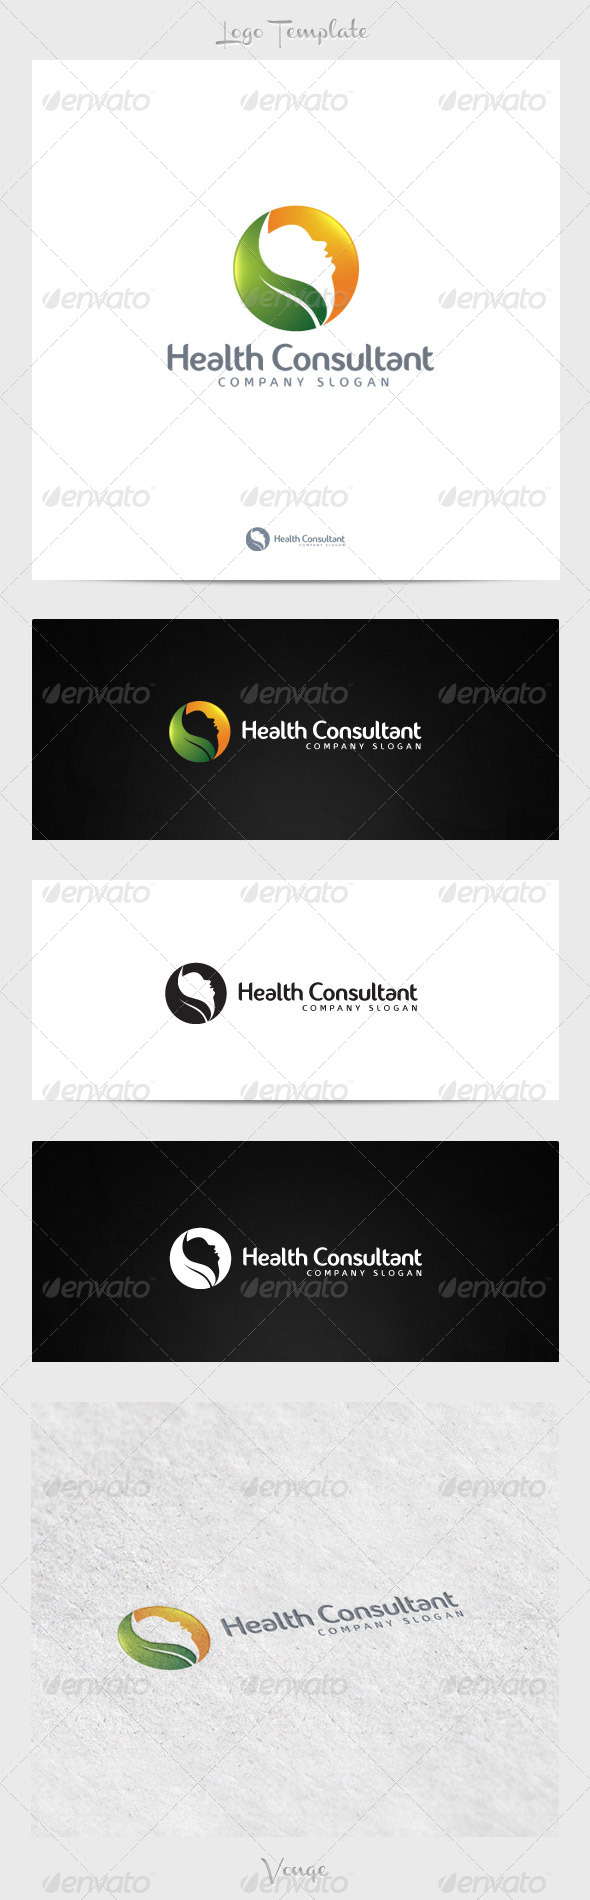 GraphicRiver Health Consultant 4224845